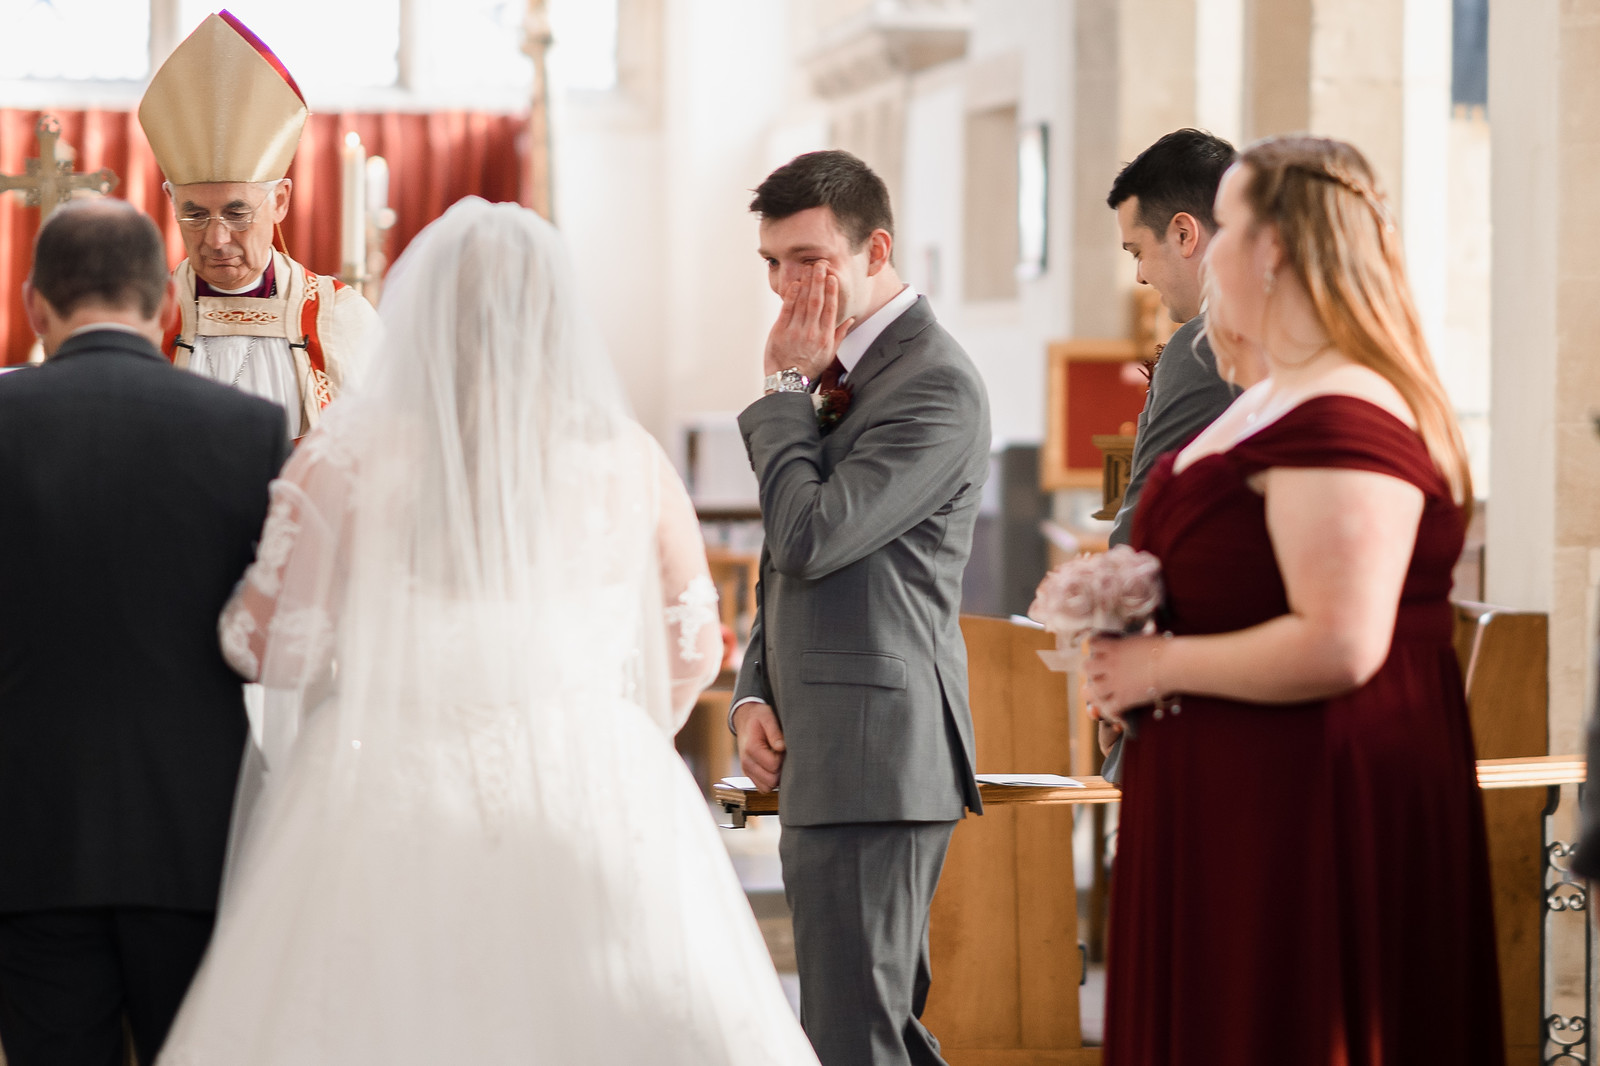 Groom wipes his tears away as his bride meets him at the end of the aisle| Cotswold Wedding Venue